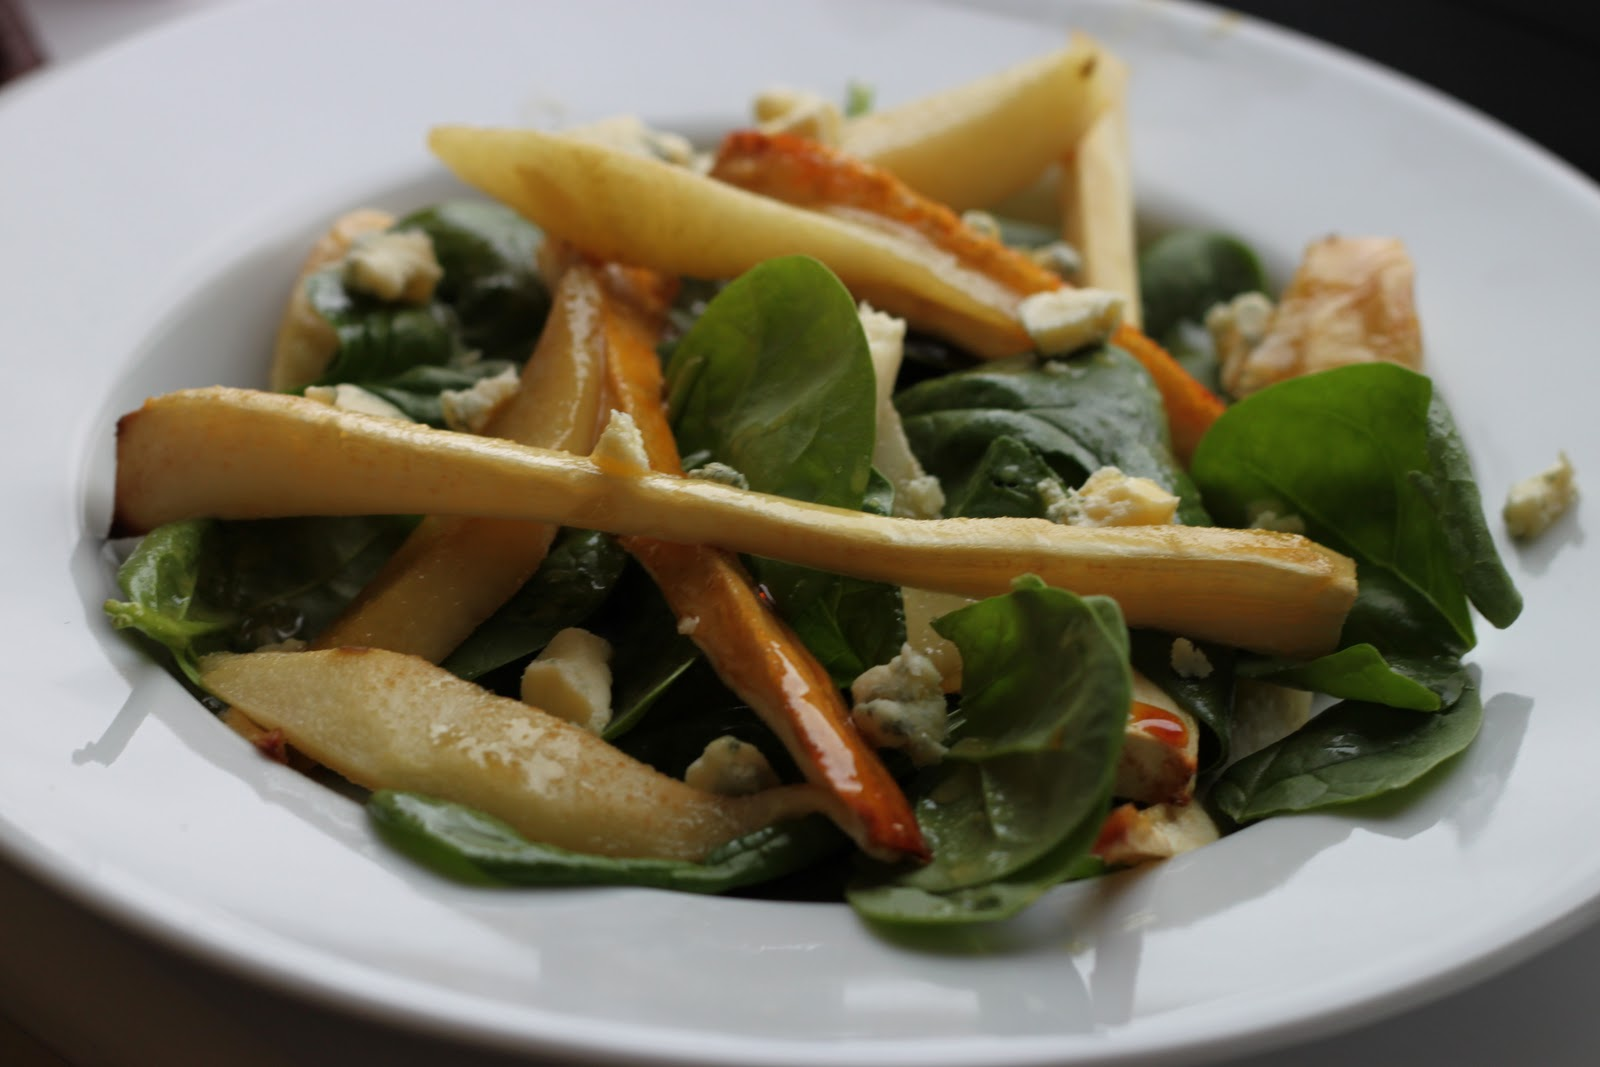 Culinary Conquests: Honey Roasted Pear and Parsnip Salad